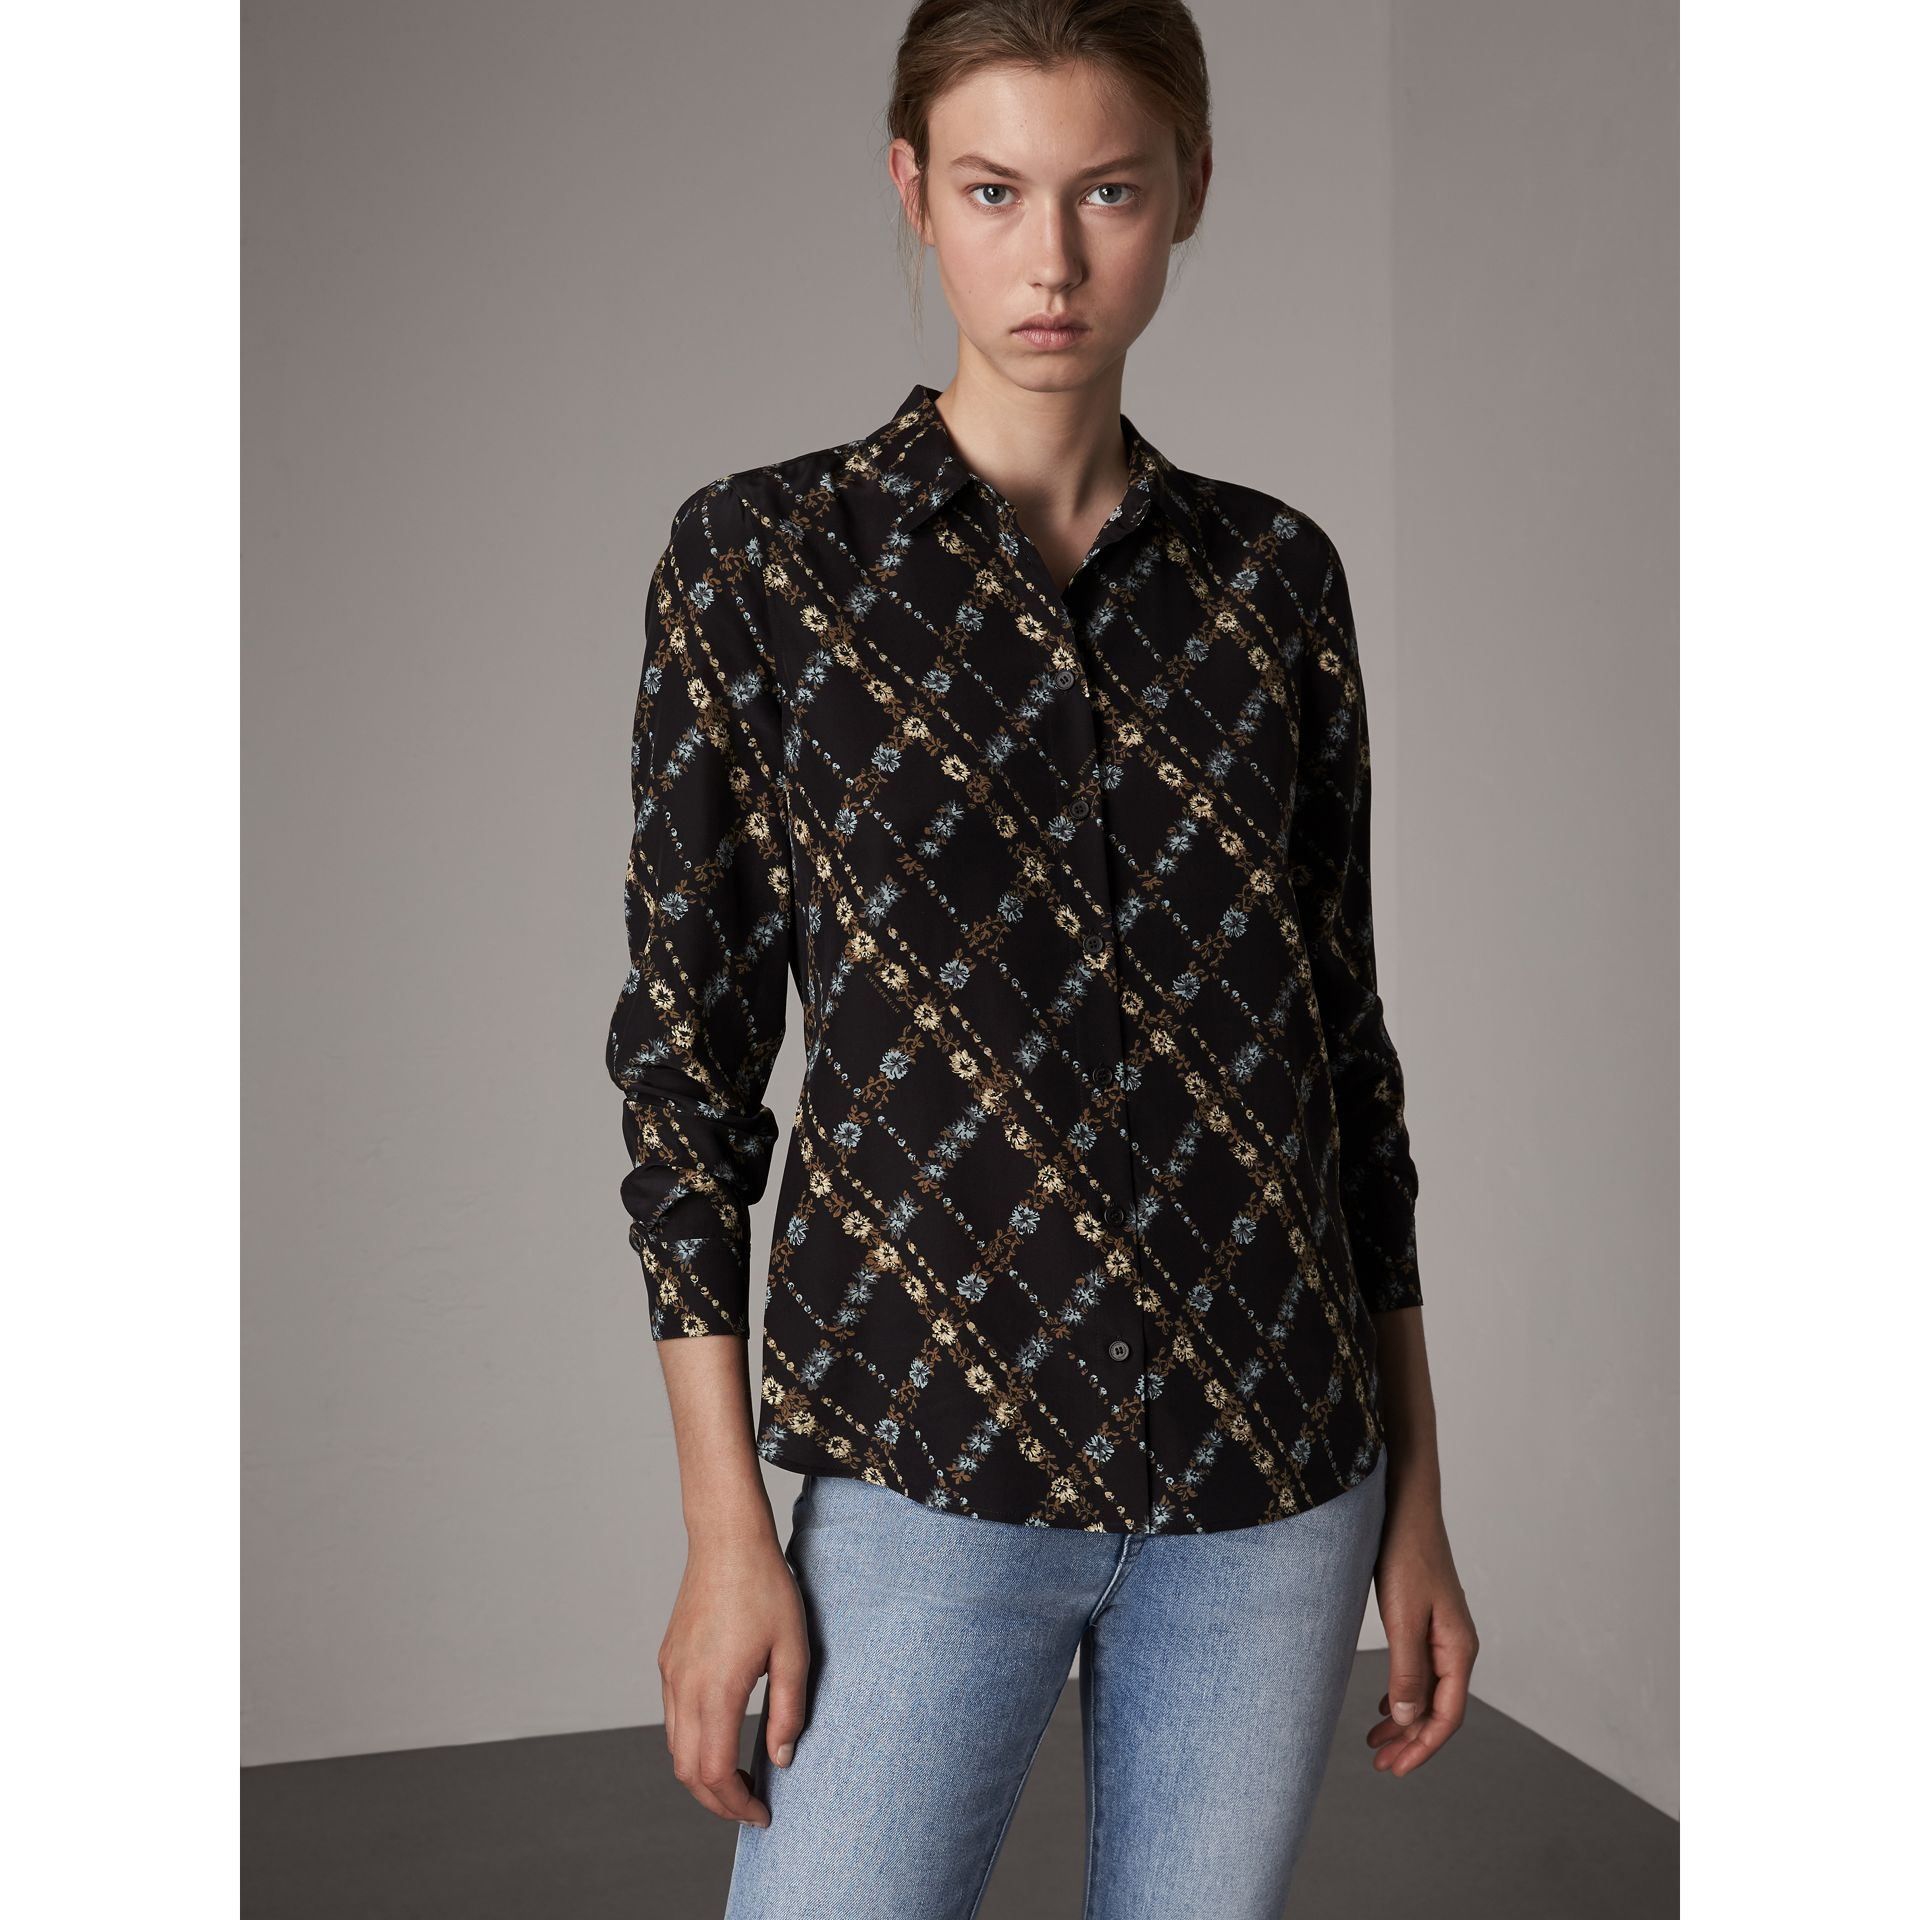 Lattice Floral Print Silk Shirt in Black - Women | Burberry Singapore - gallery image 1